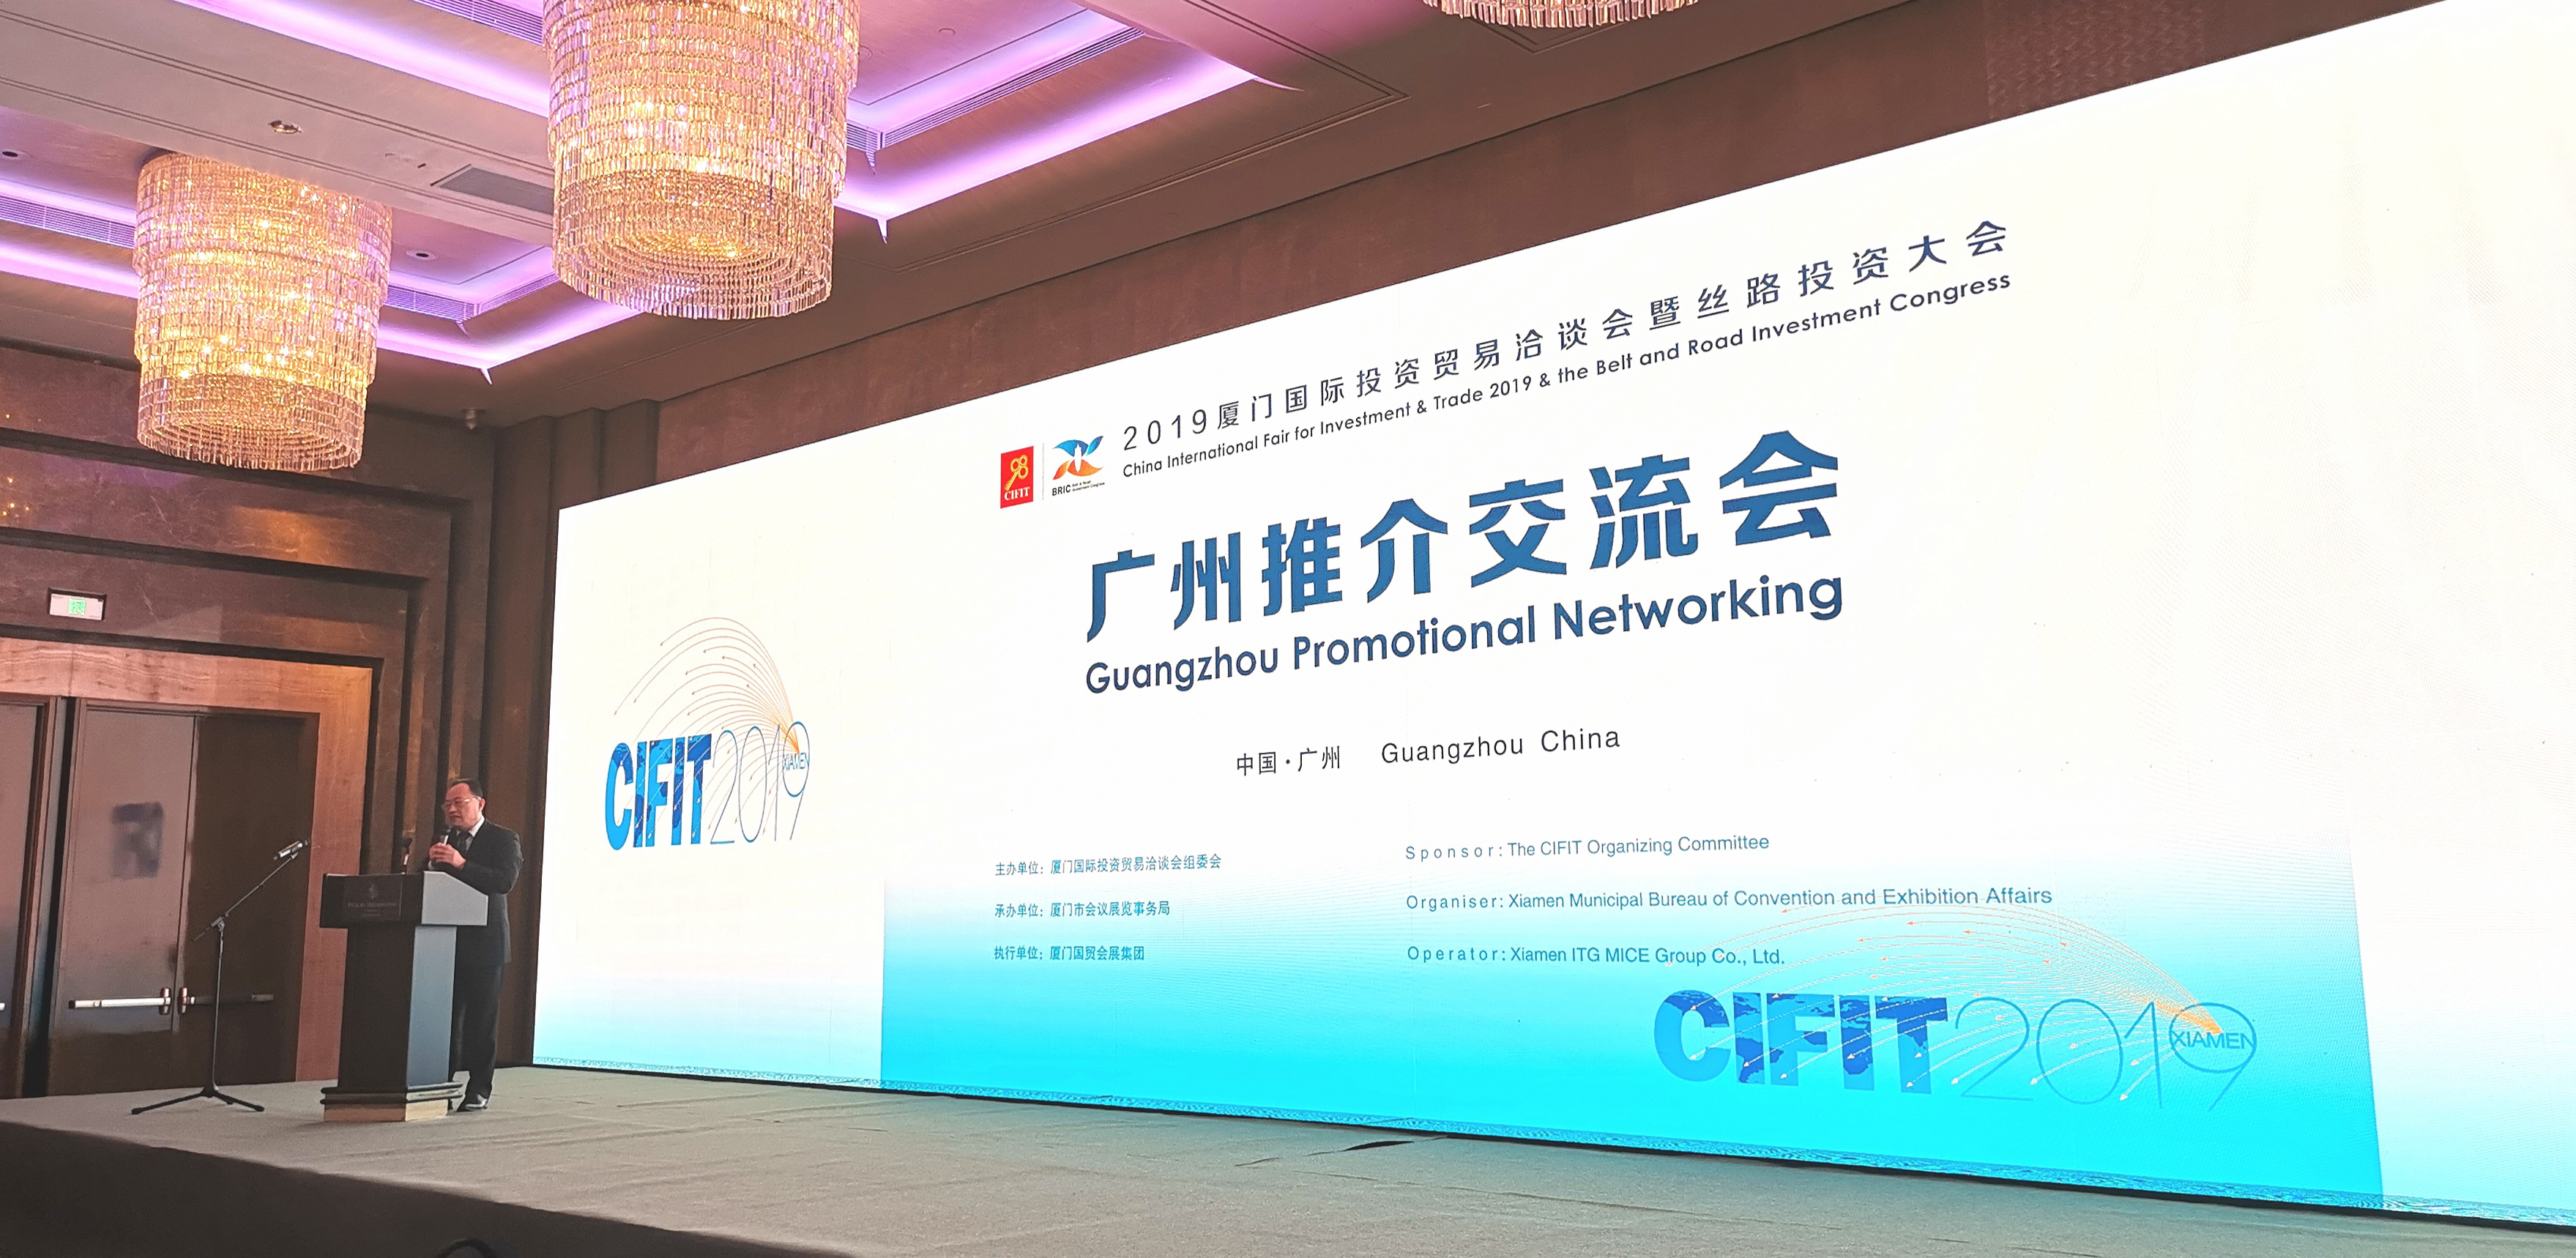 http://www.k2summit.cn/yulemingxing/671497.html